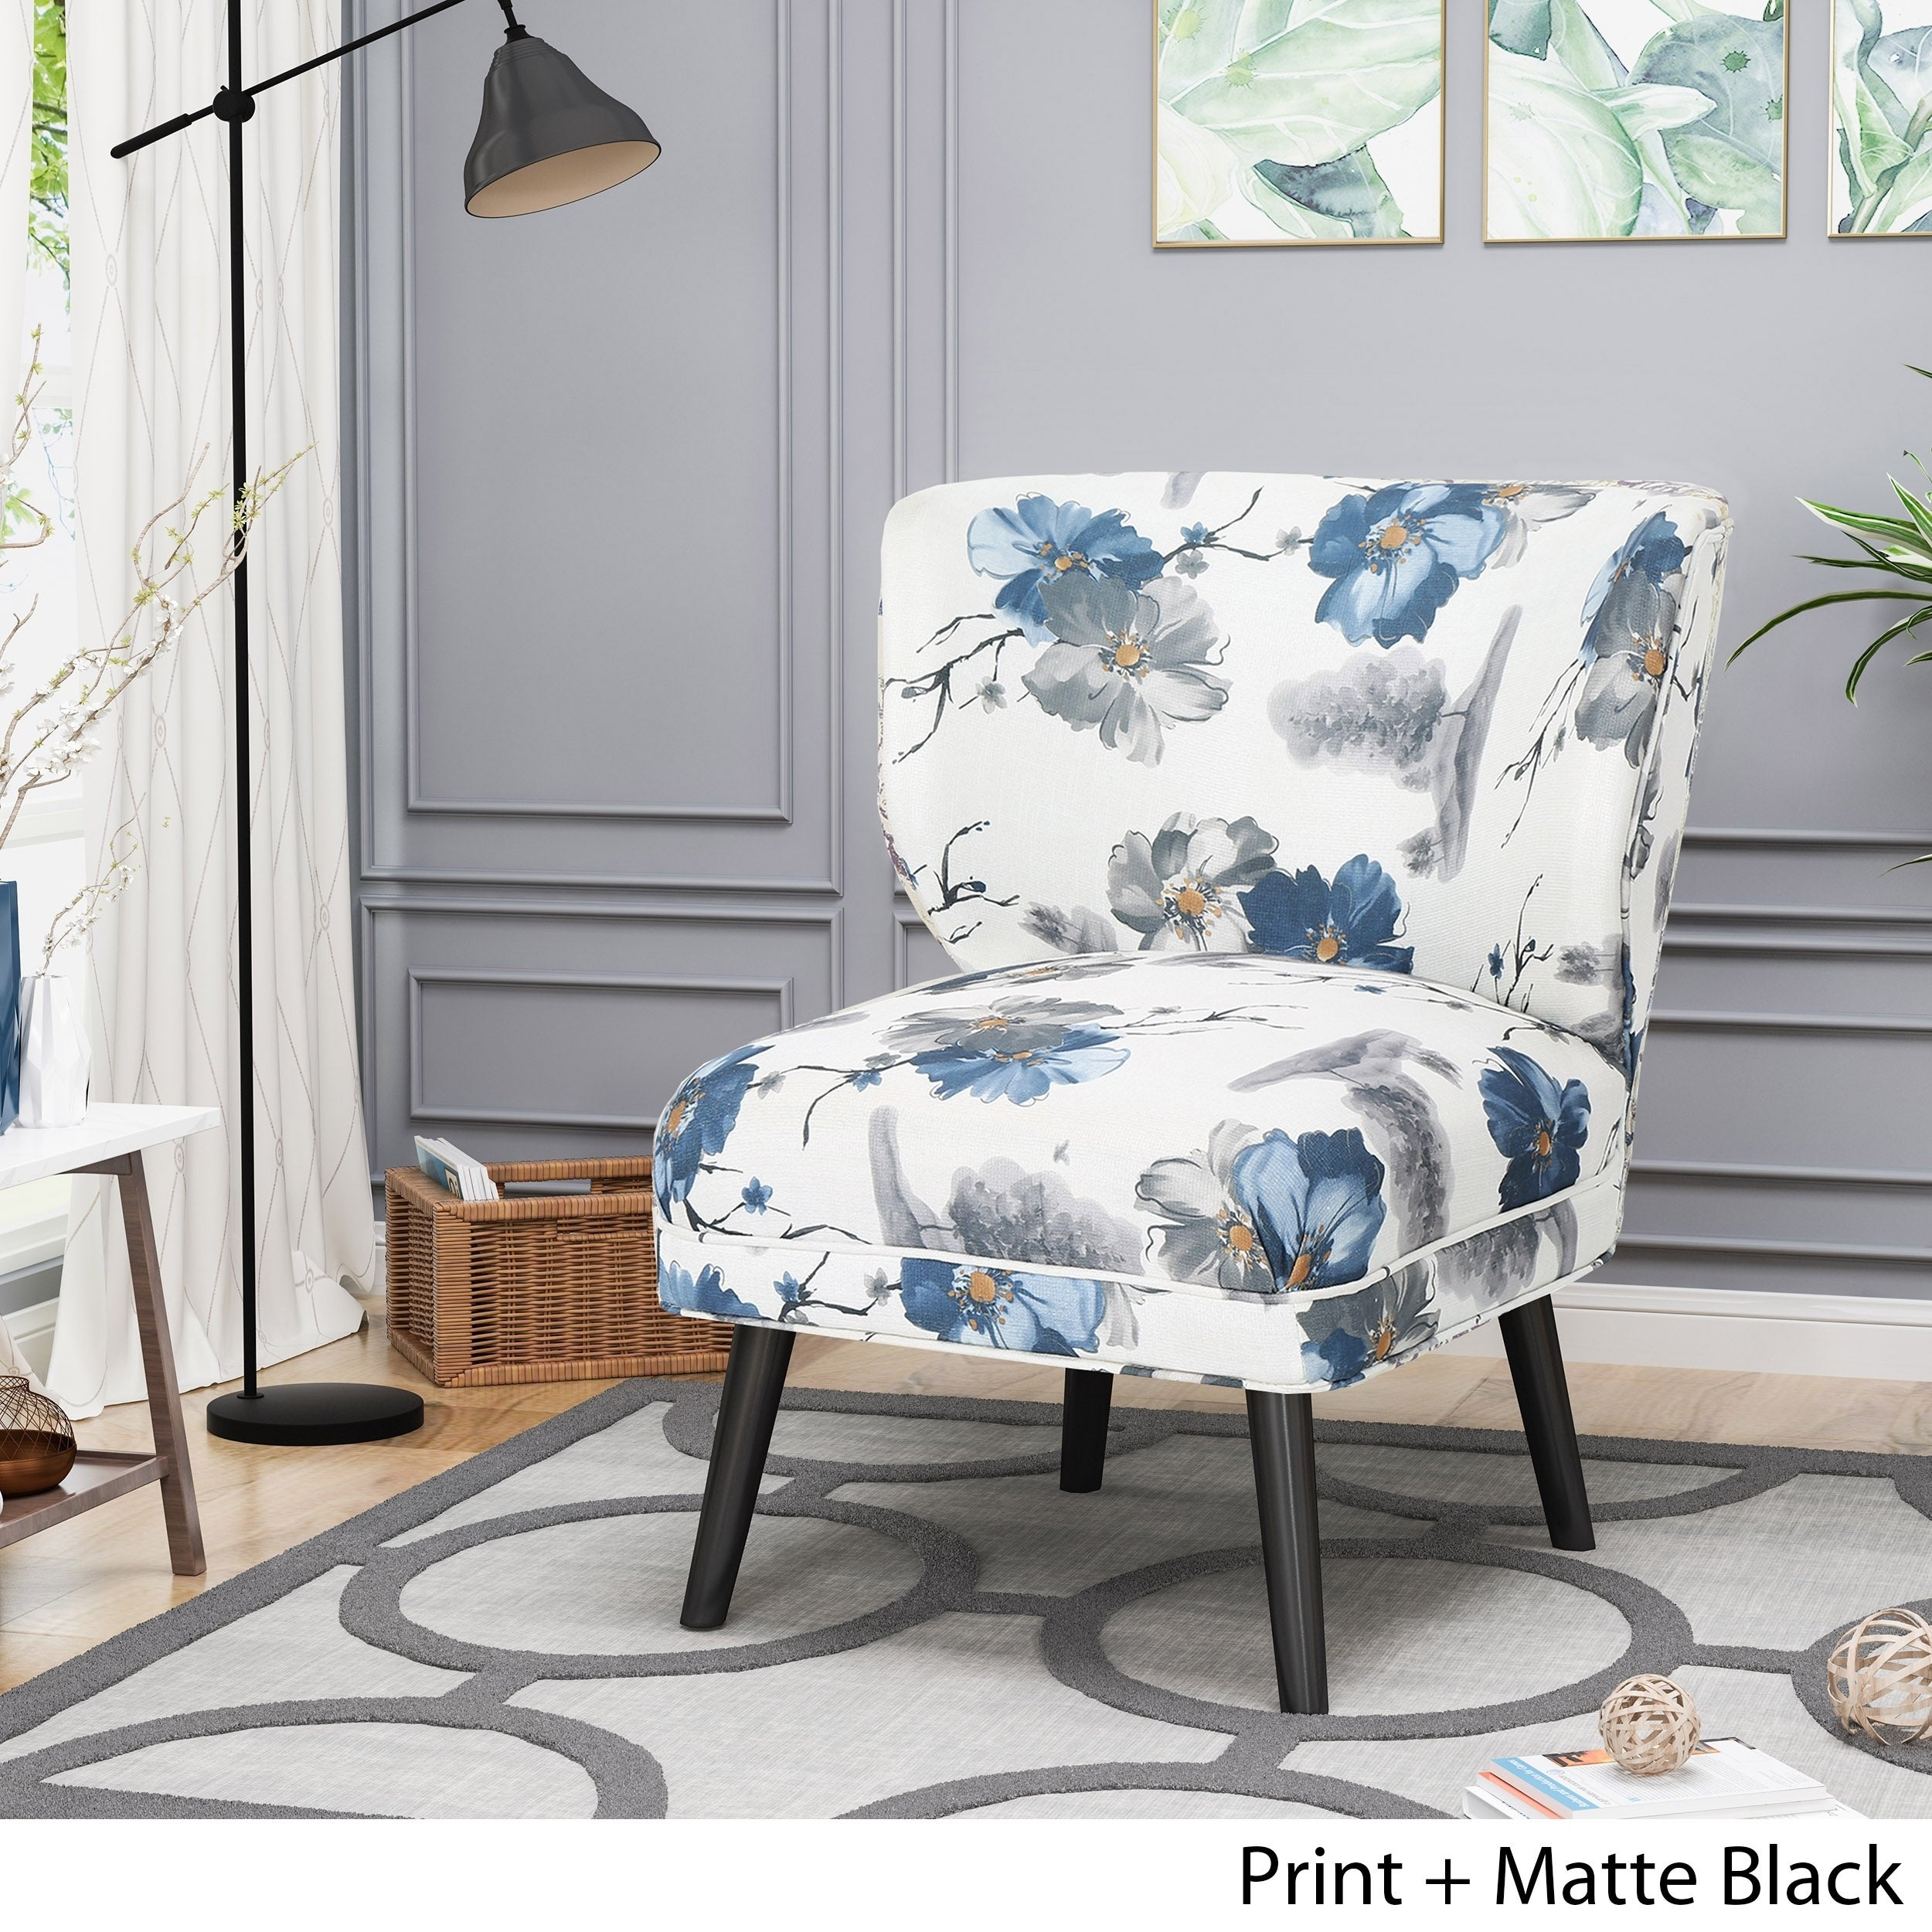 Laurier Modern Farmhouse Accent Chair By Chirstopher Knight Home On Sale Overstock 22727913 Print